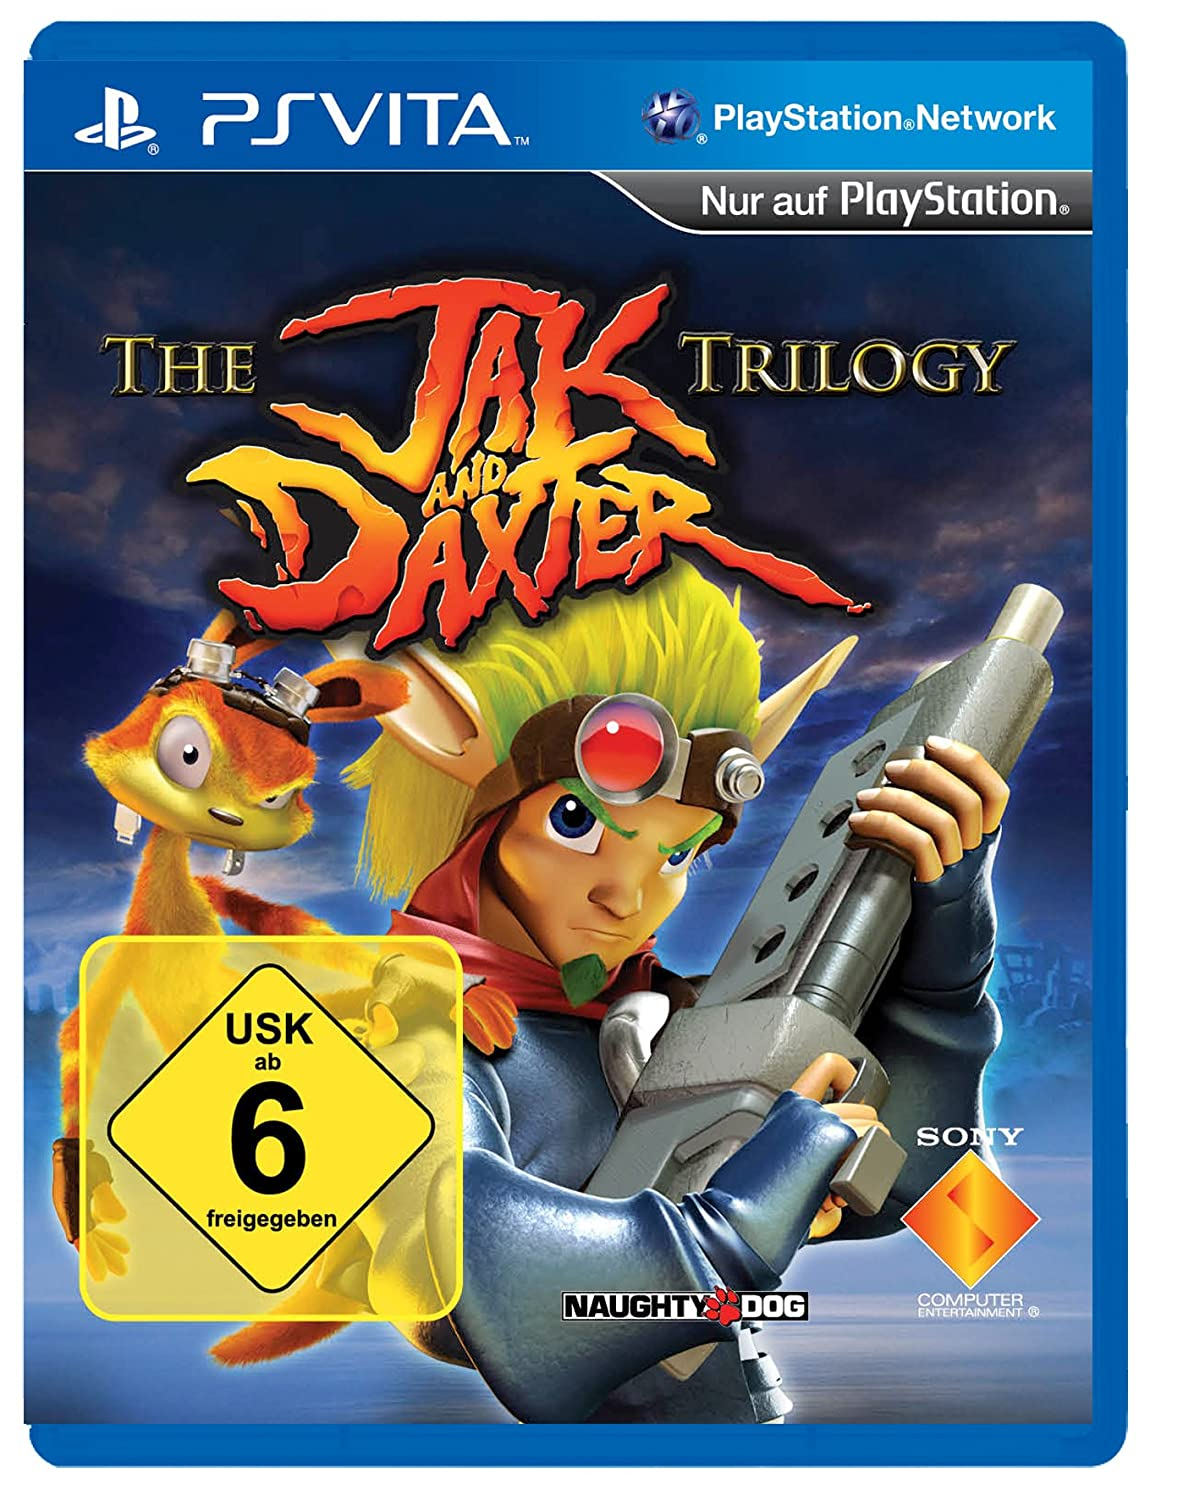 product photo for The Jak and Daxter Trilogy